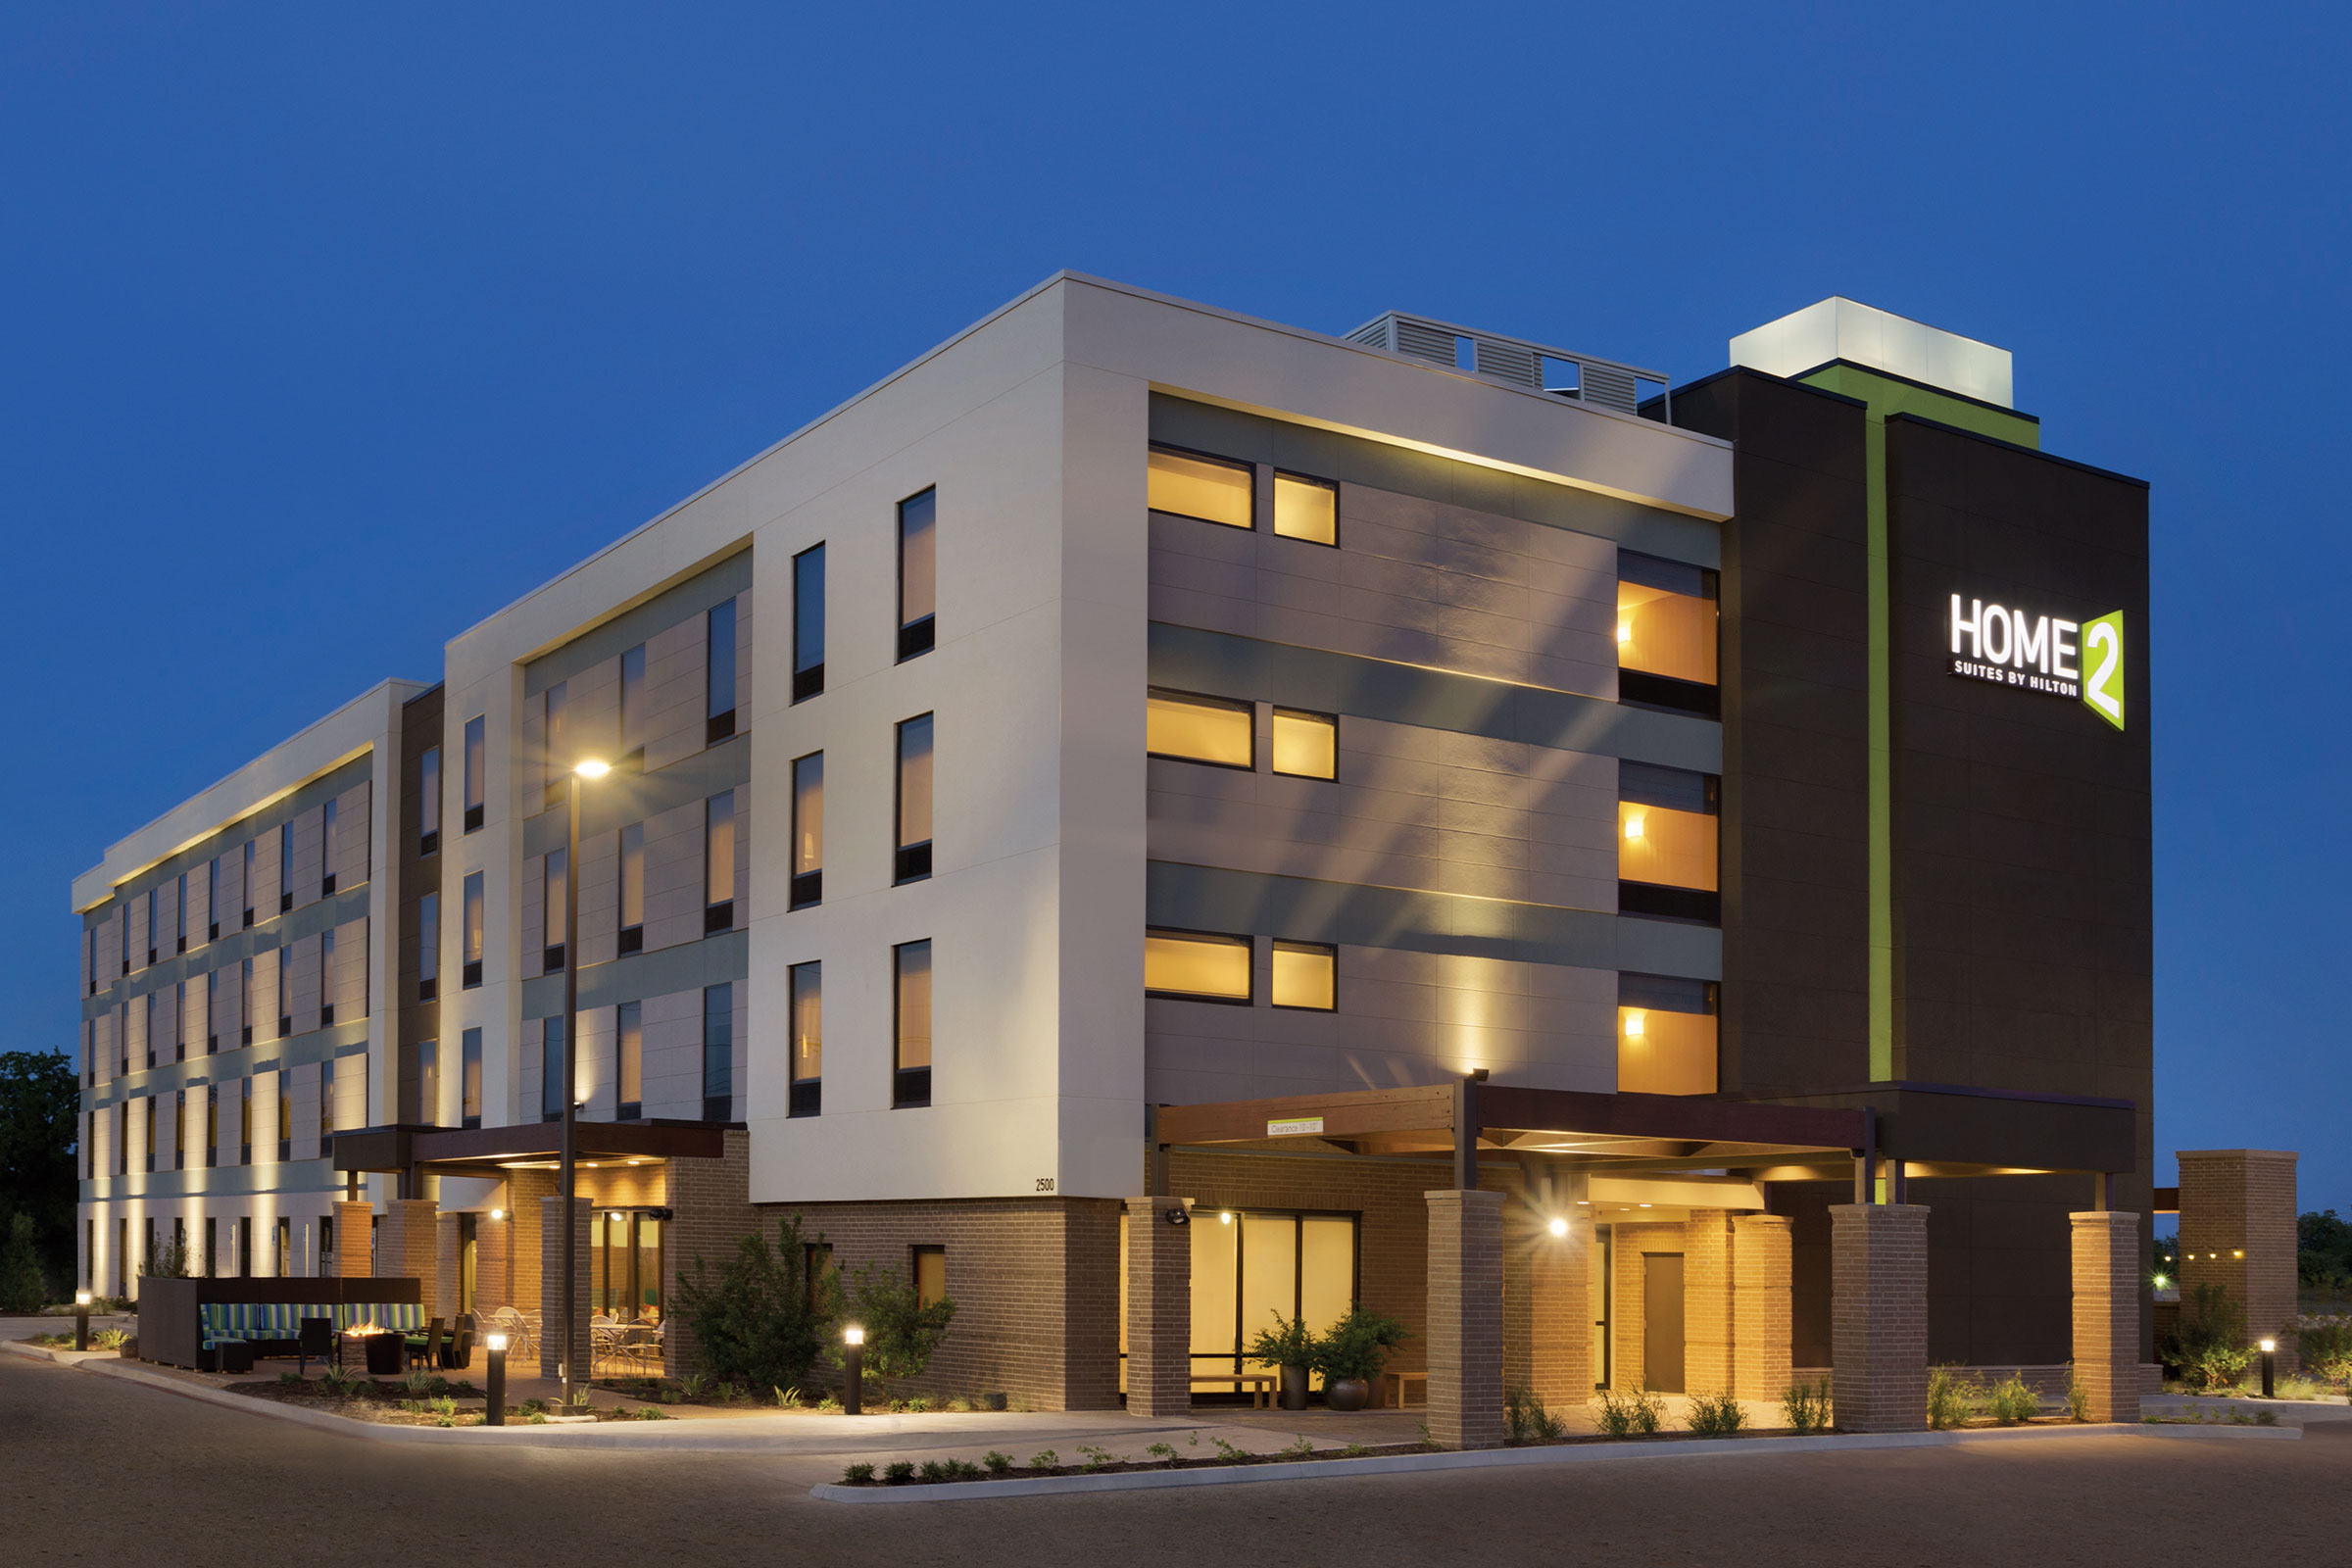 Home 2 suites waco tx gba architecture and design for Home two suites